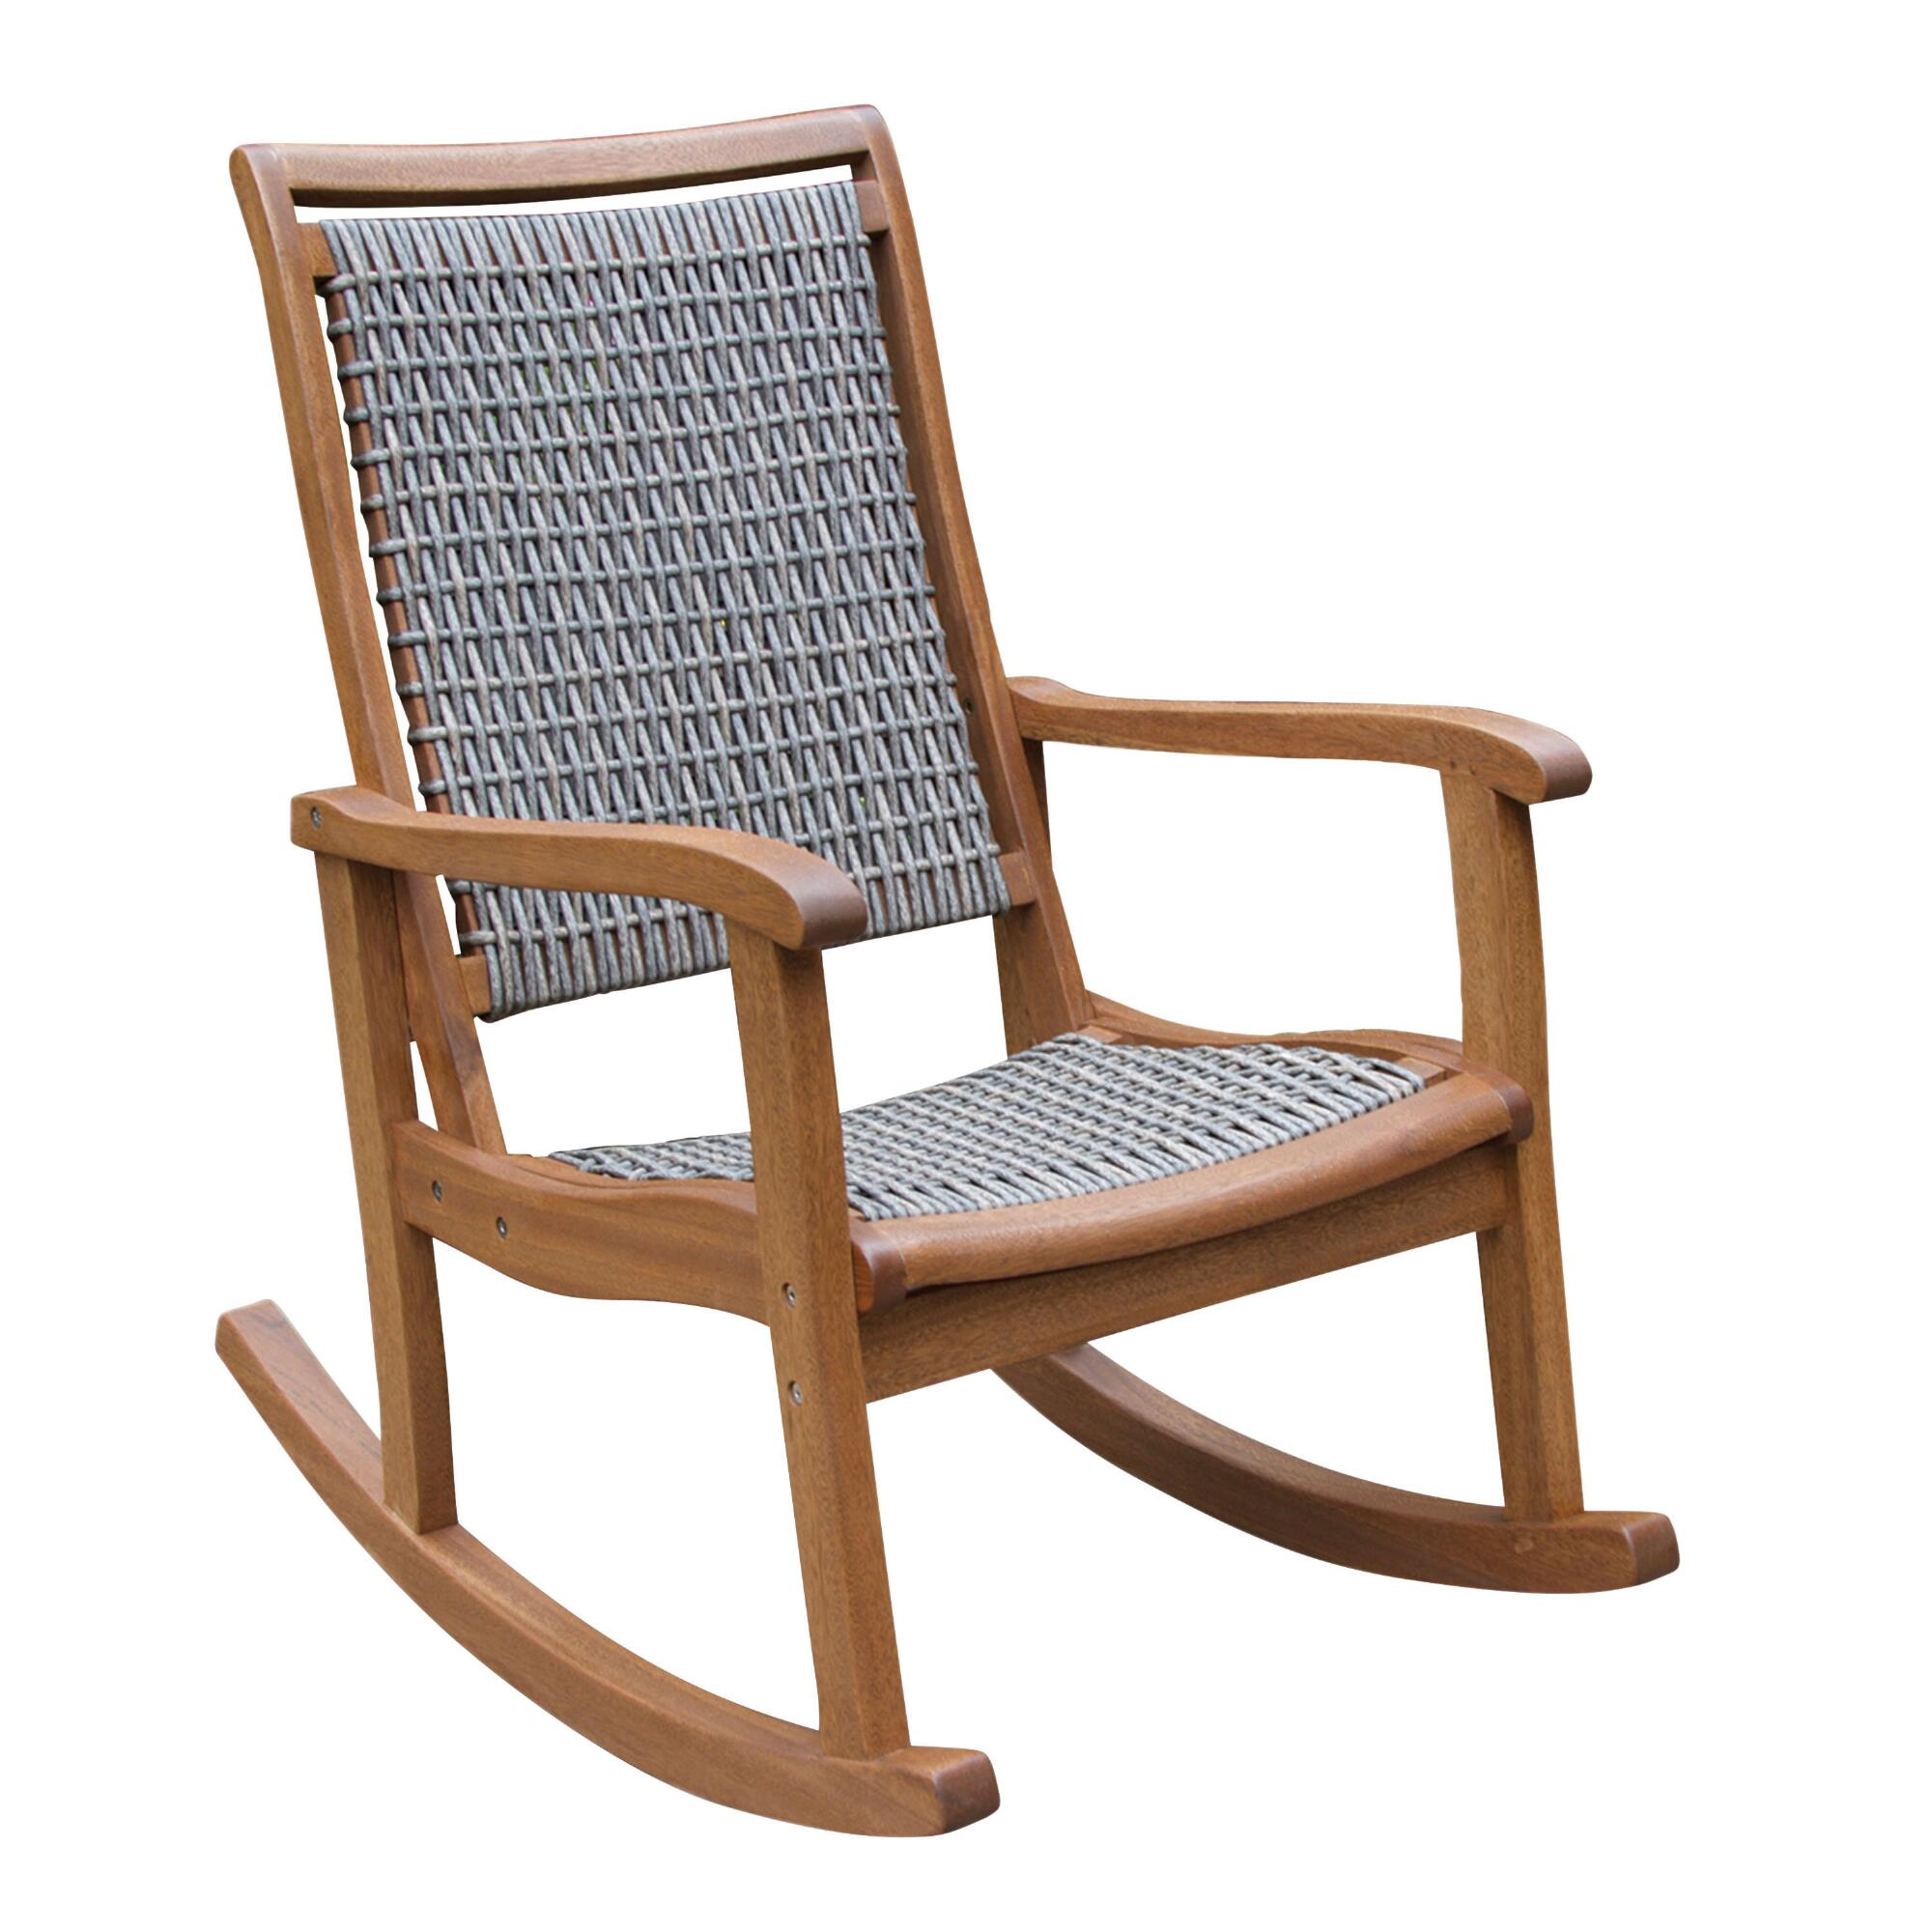 Gray all weather wicker and wood galena rocking chair world market - Rocking chair but ...